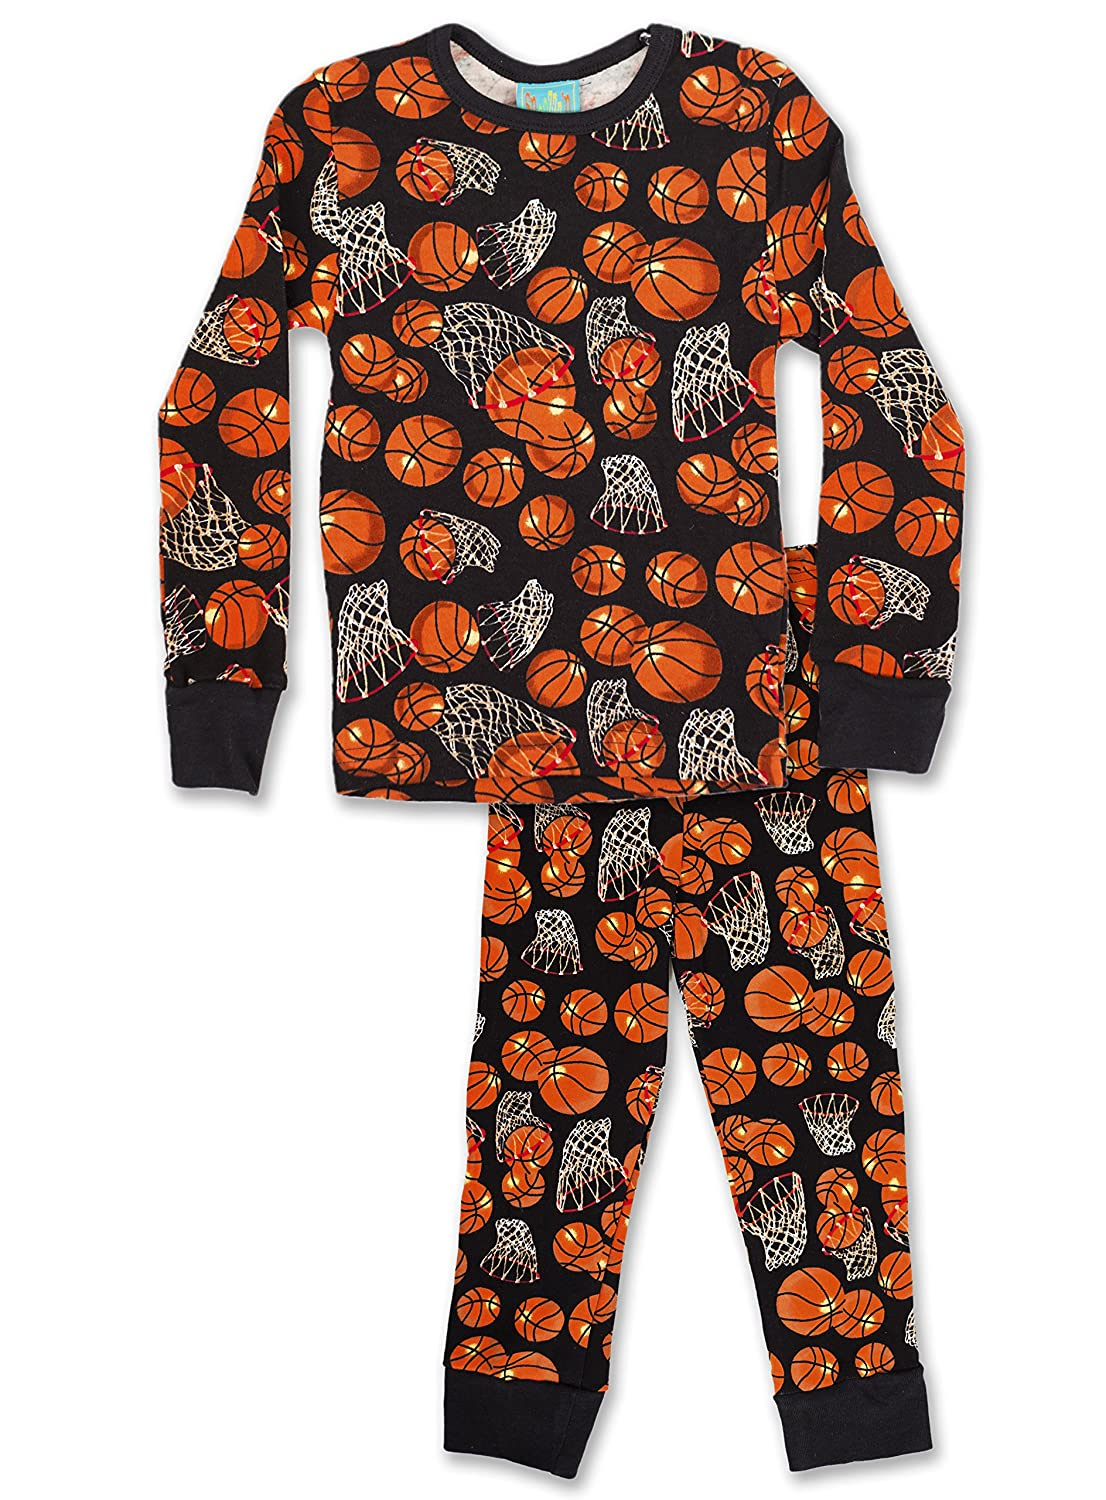 Snoozzz'n Little Boys Thermal Underwear Top and Bottom Set 78118124